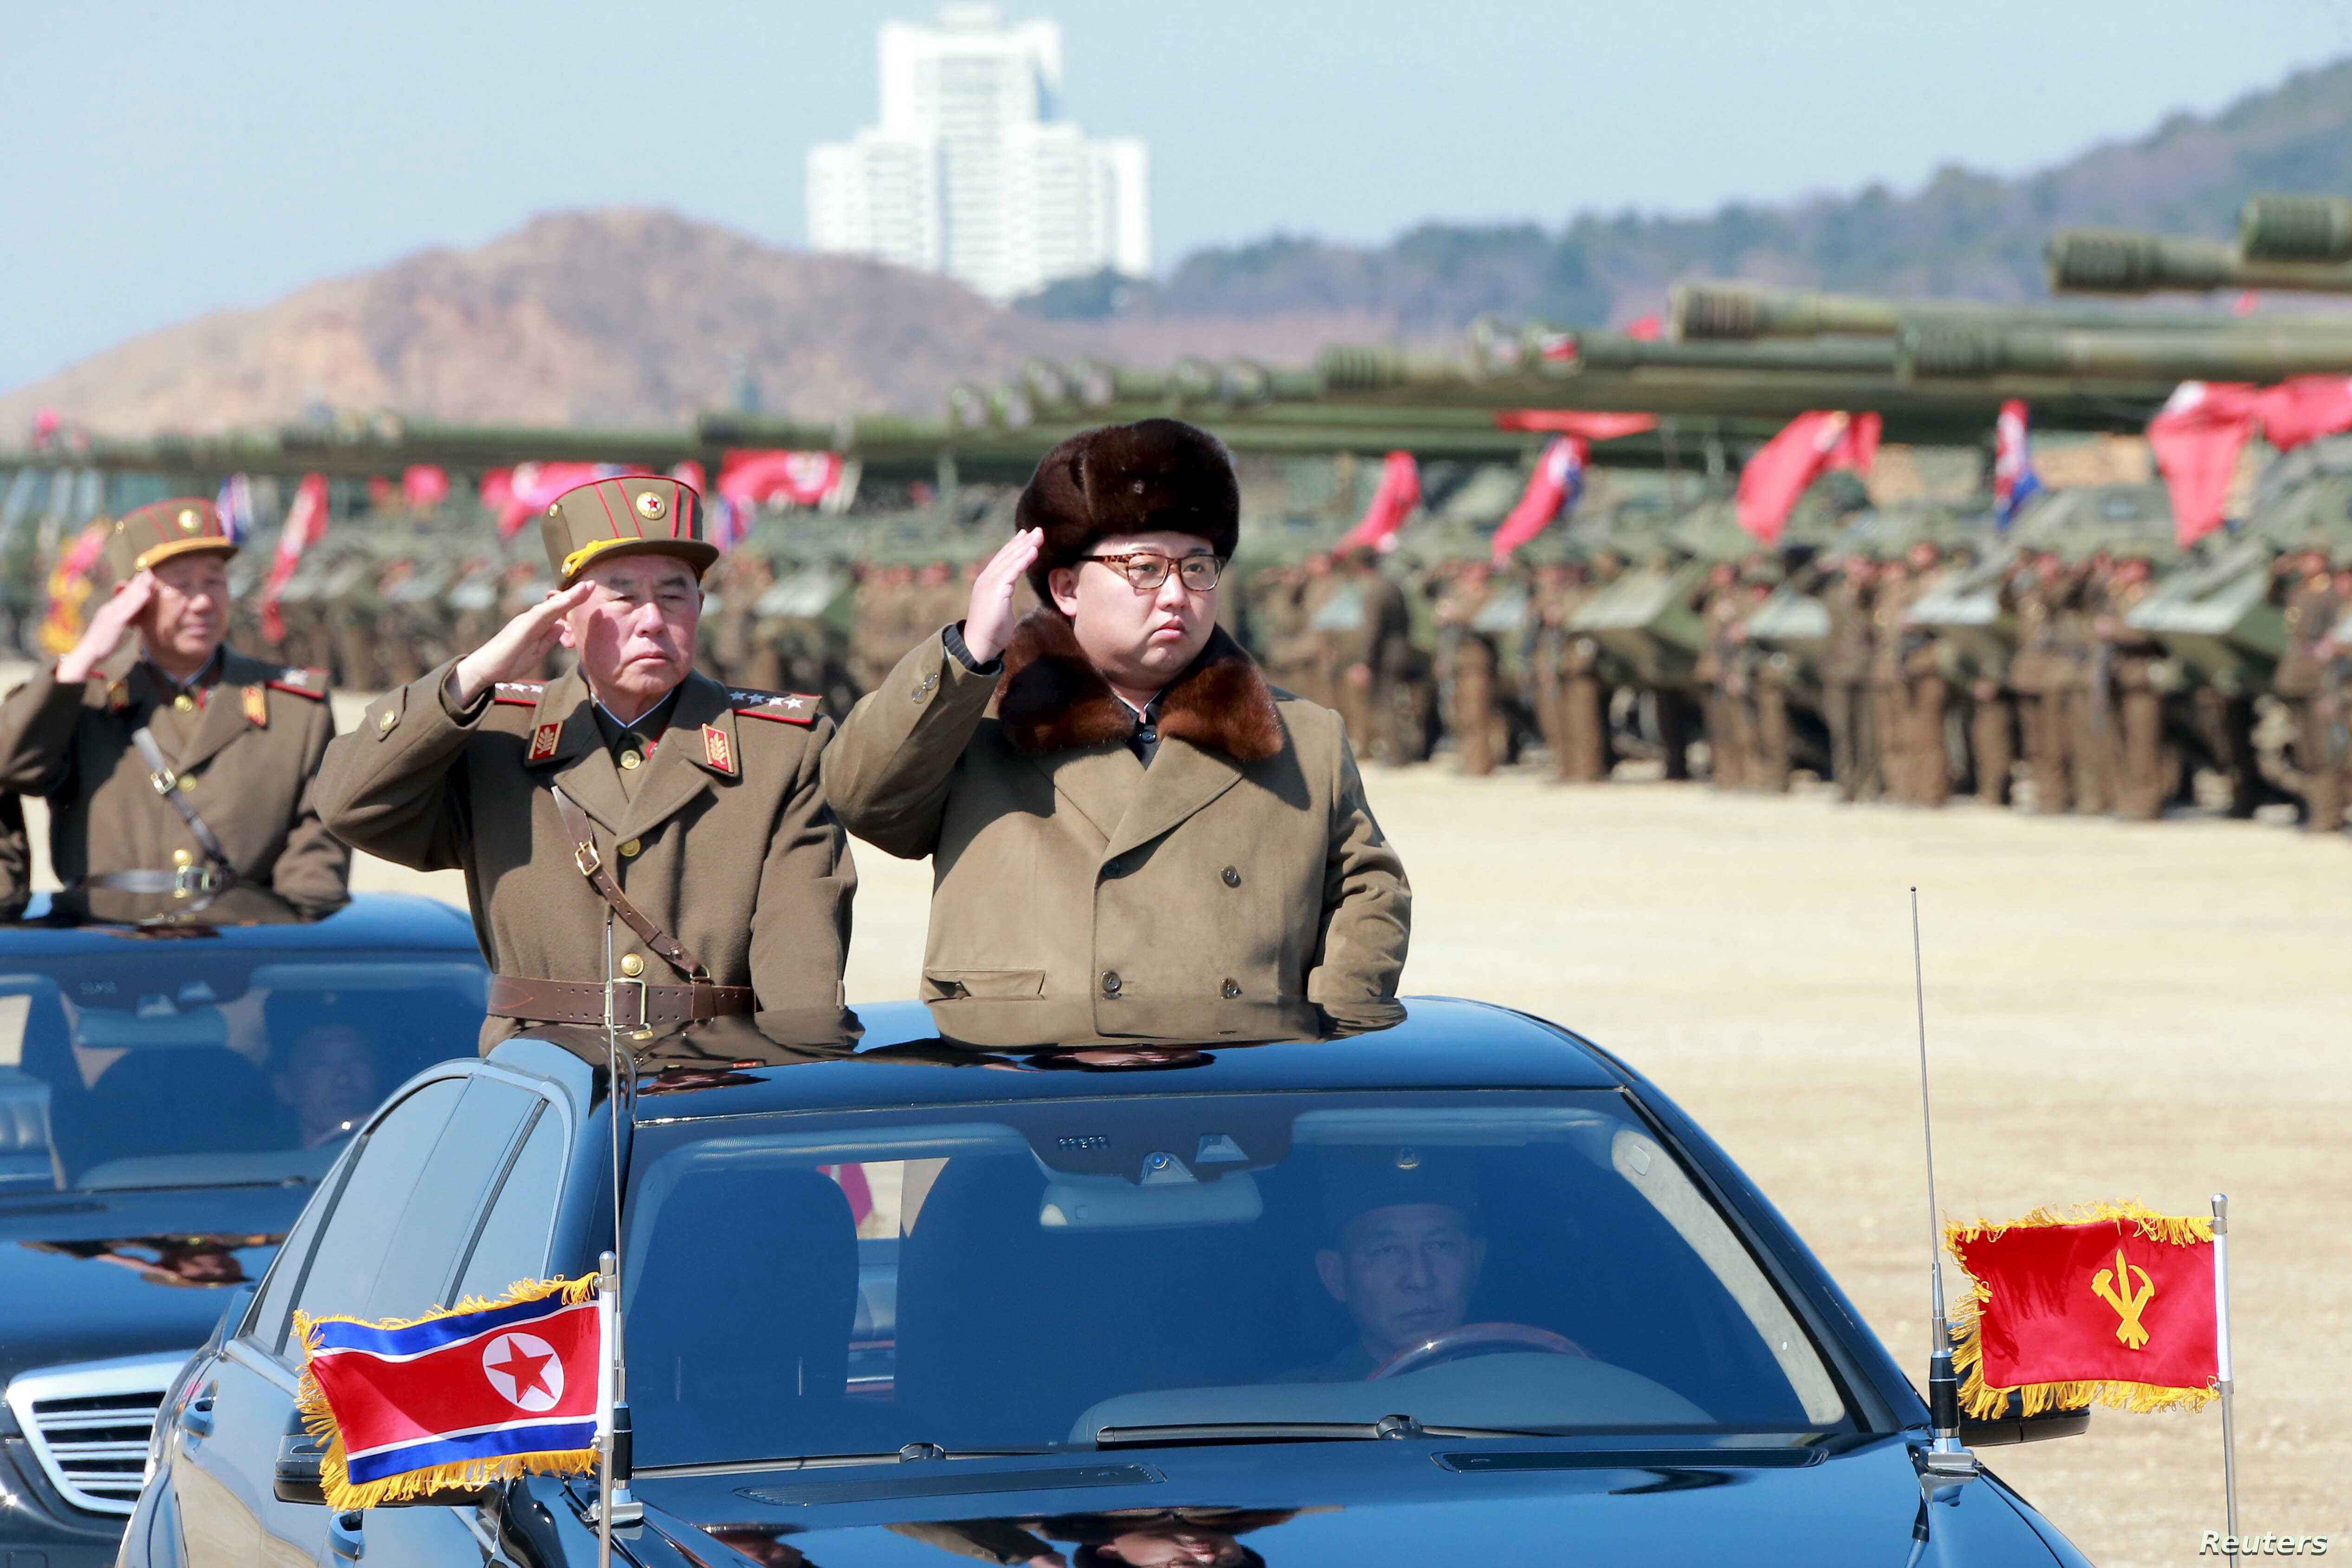 North Korean leader Kim Jong Un salutes as he arrives to inspect a military drill at an unknown location, in this undated photo released by North Korea's Korean Central News Agency, March 25, 2016.